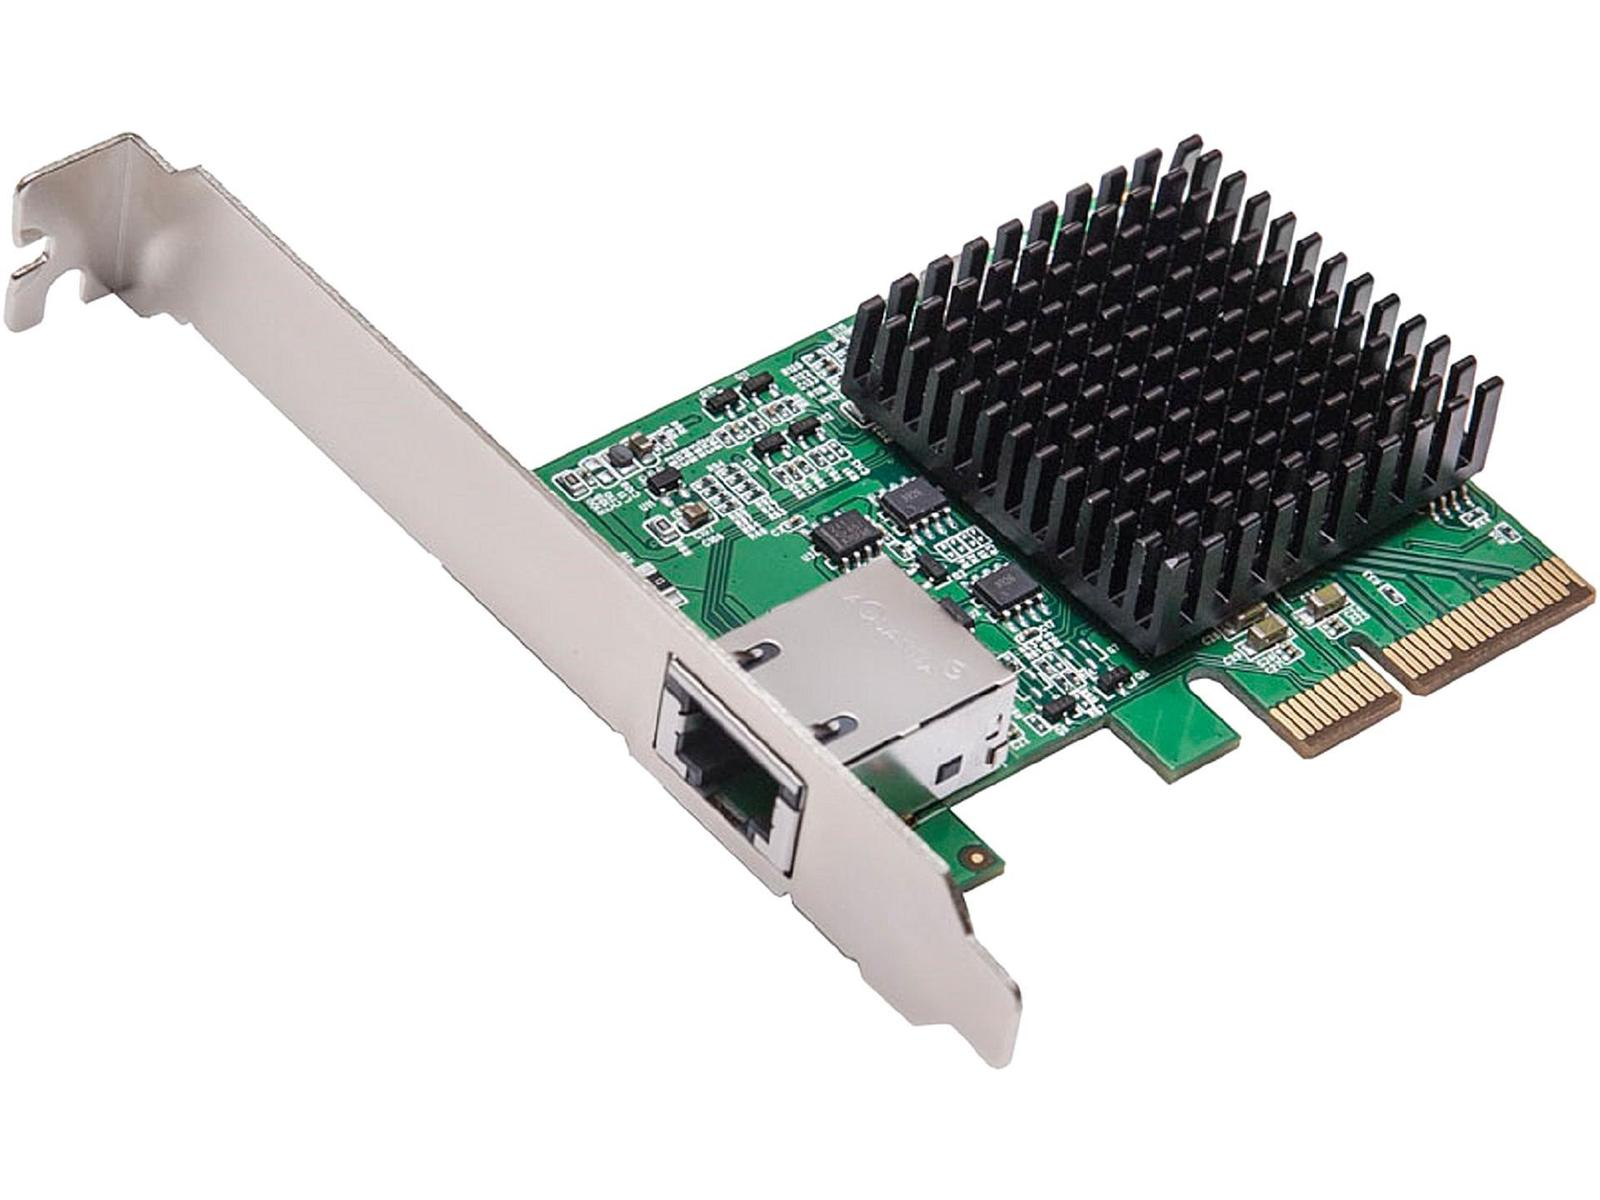 Syba SD-PEX24055 PCIe x4 10 Gbit/s Network Adapter